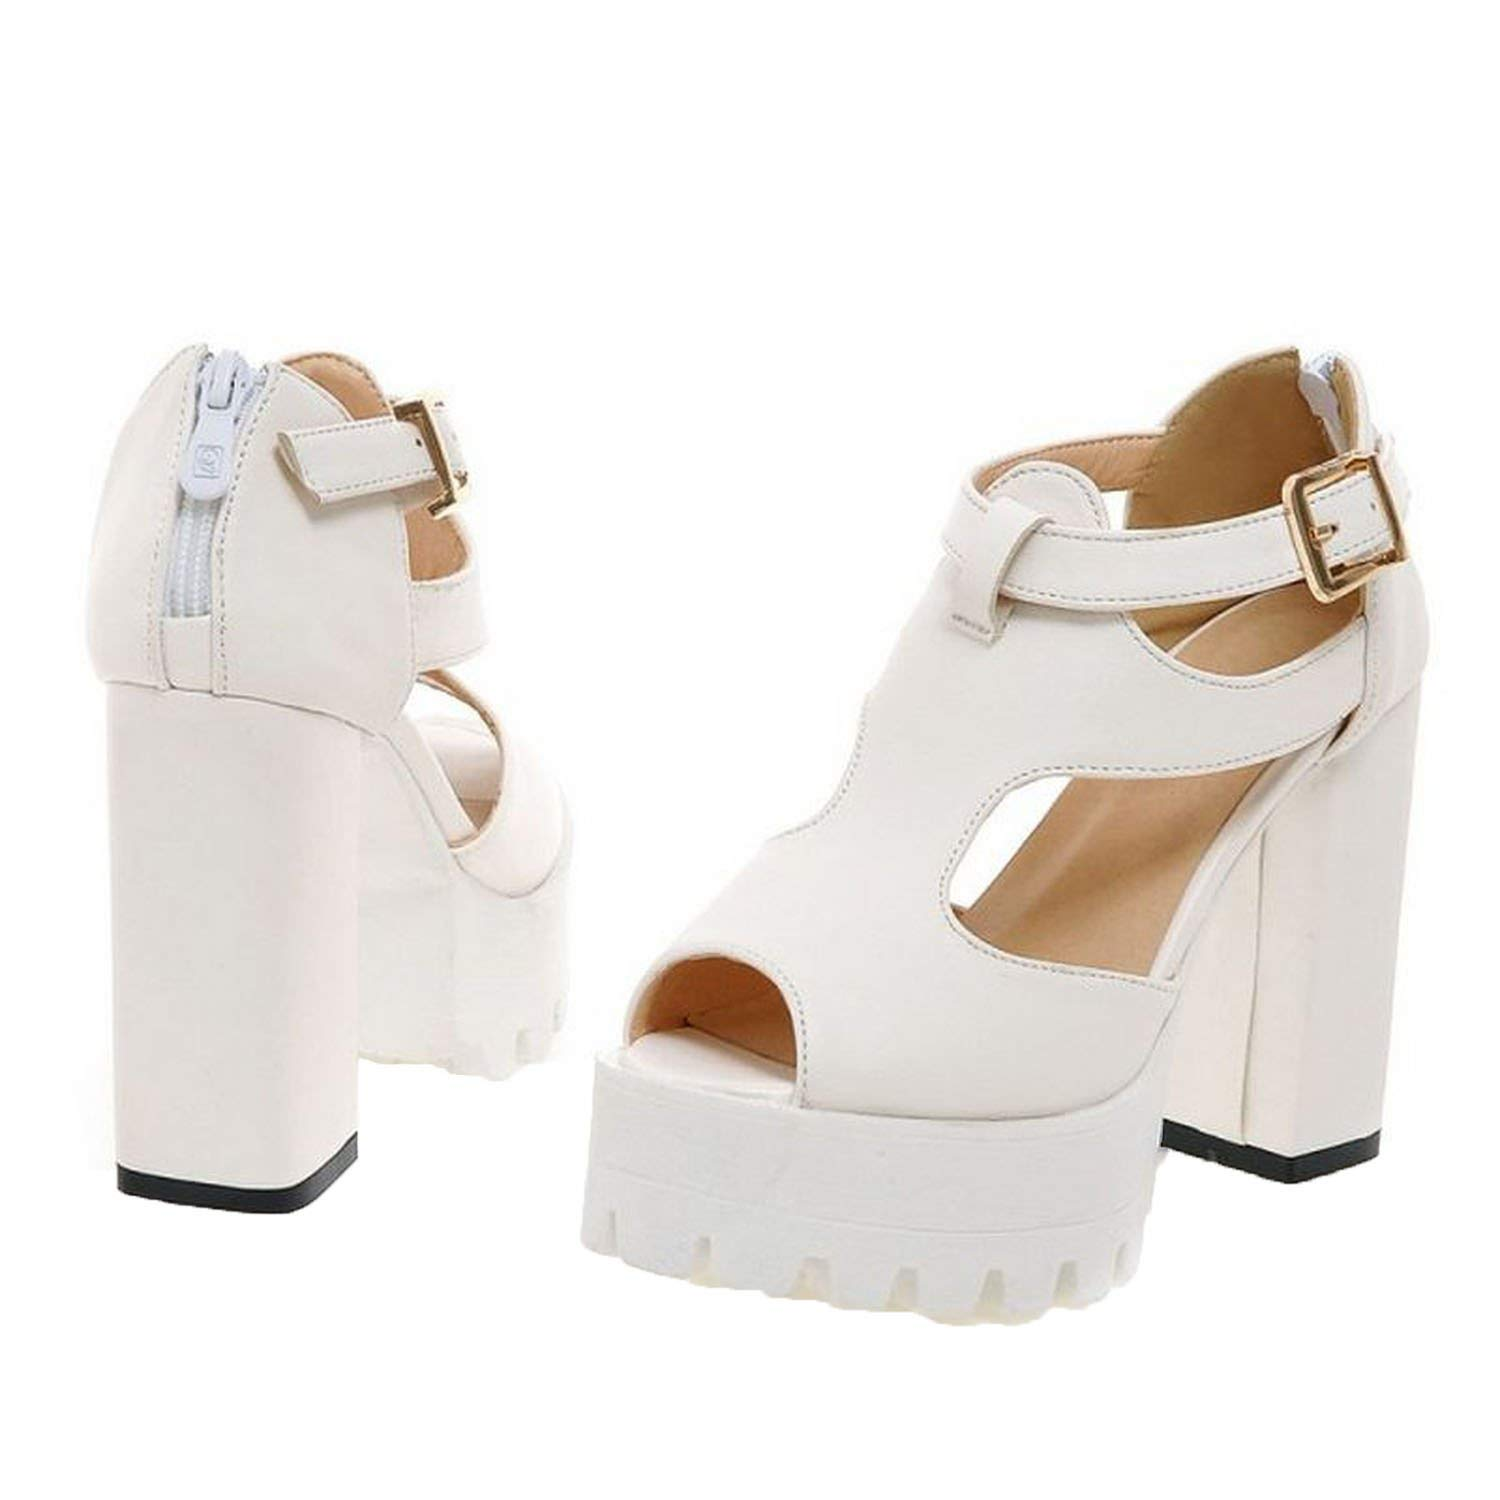 Sky-Pegasus 2018 Women peep Toe high Heel Sandals Buckle Party Sexy Platform Fashion Heels Sandal Size 32-43,4,4